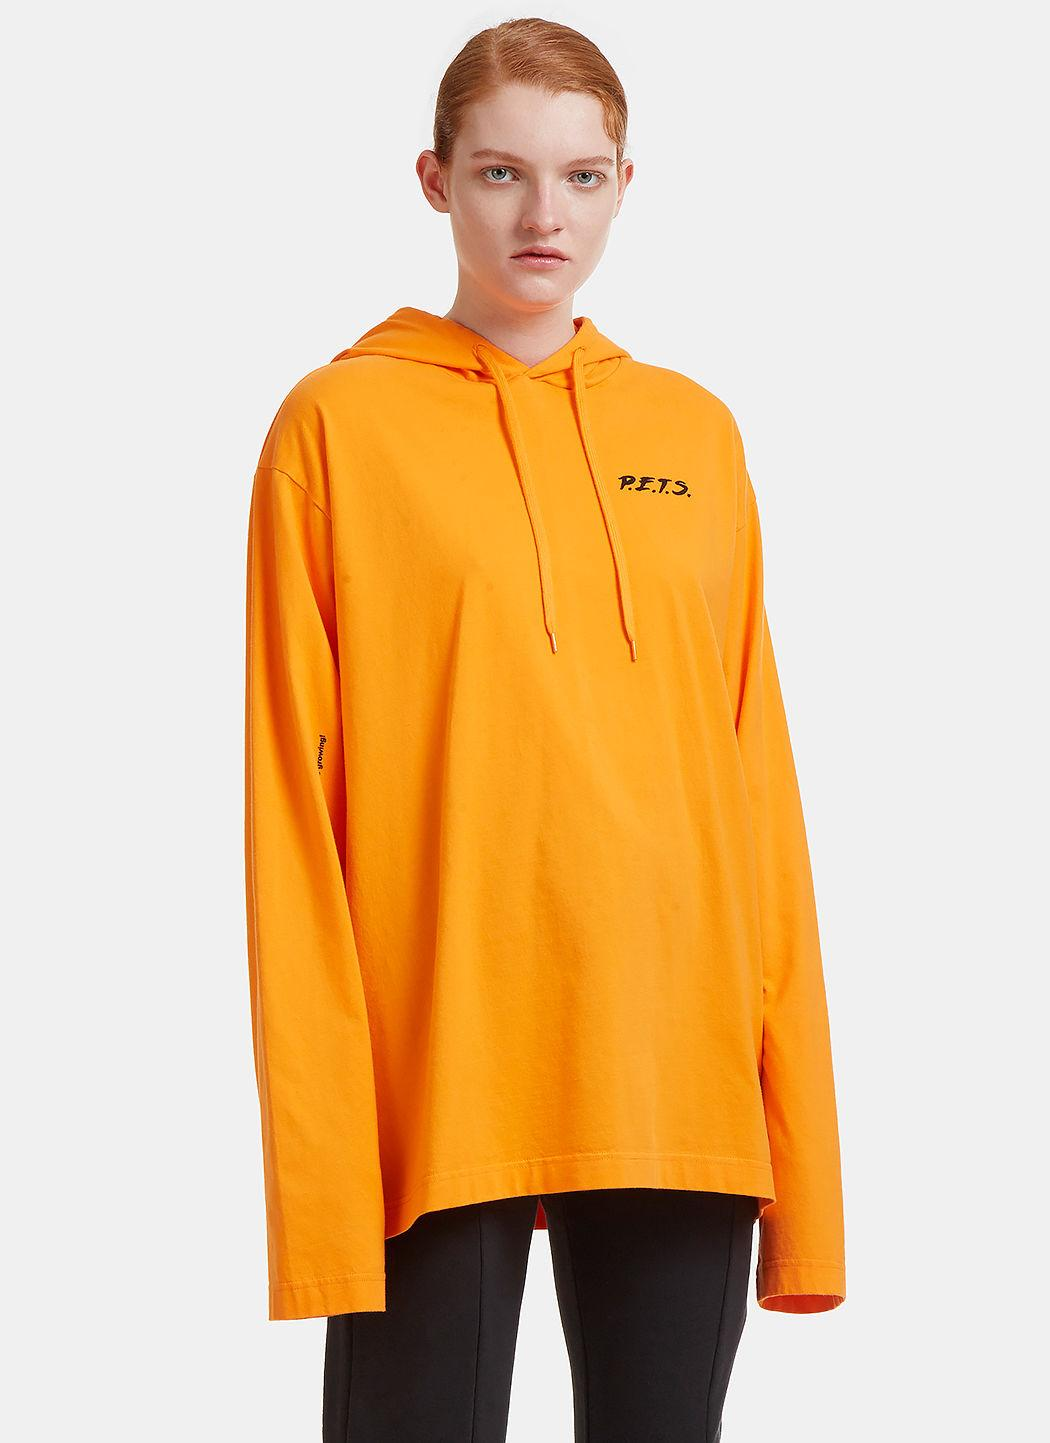 Vetements Oversized P.E.T.S. Printed Hooded Sweater In Orange